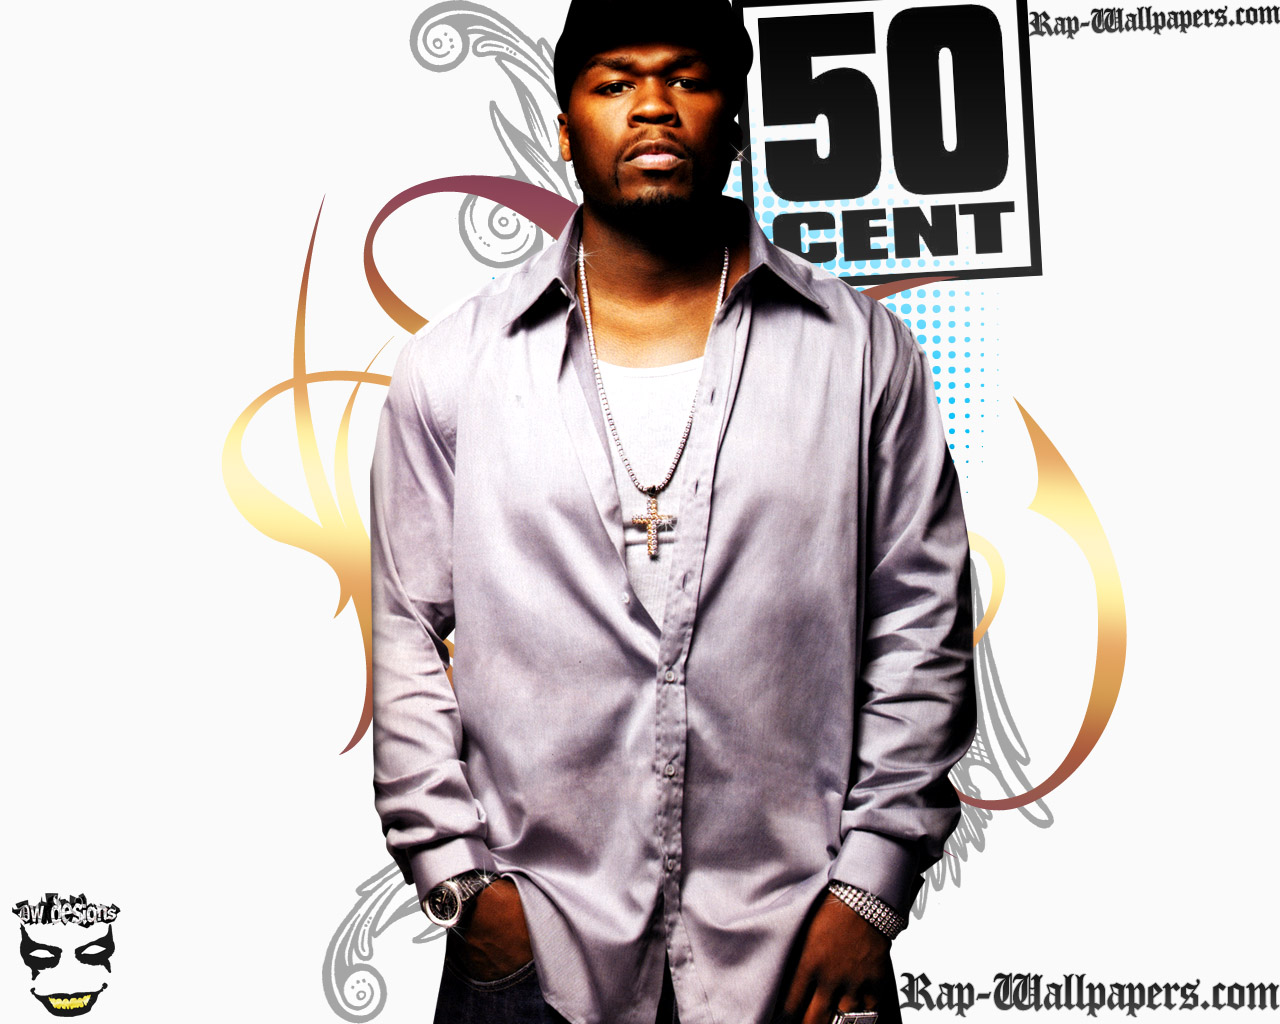 50 cent hd wallpapers